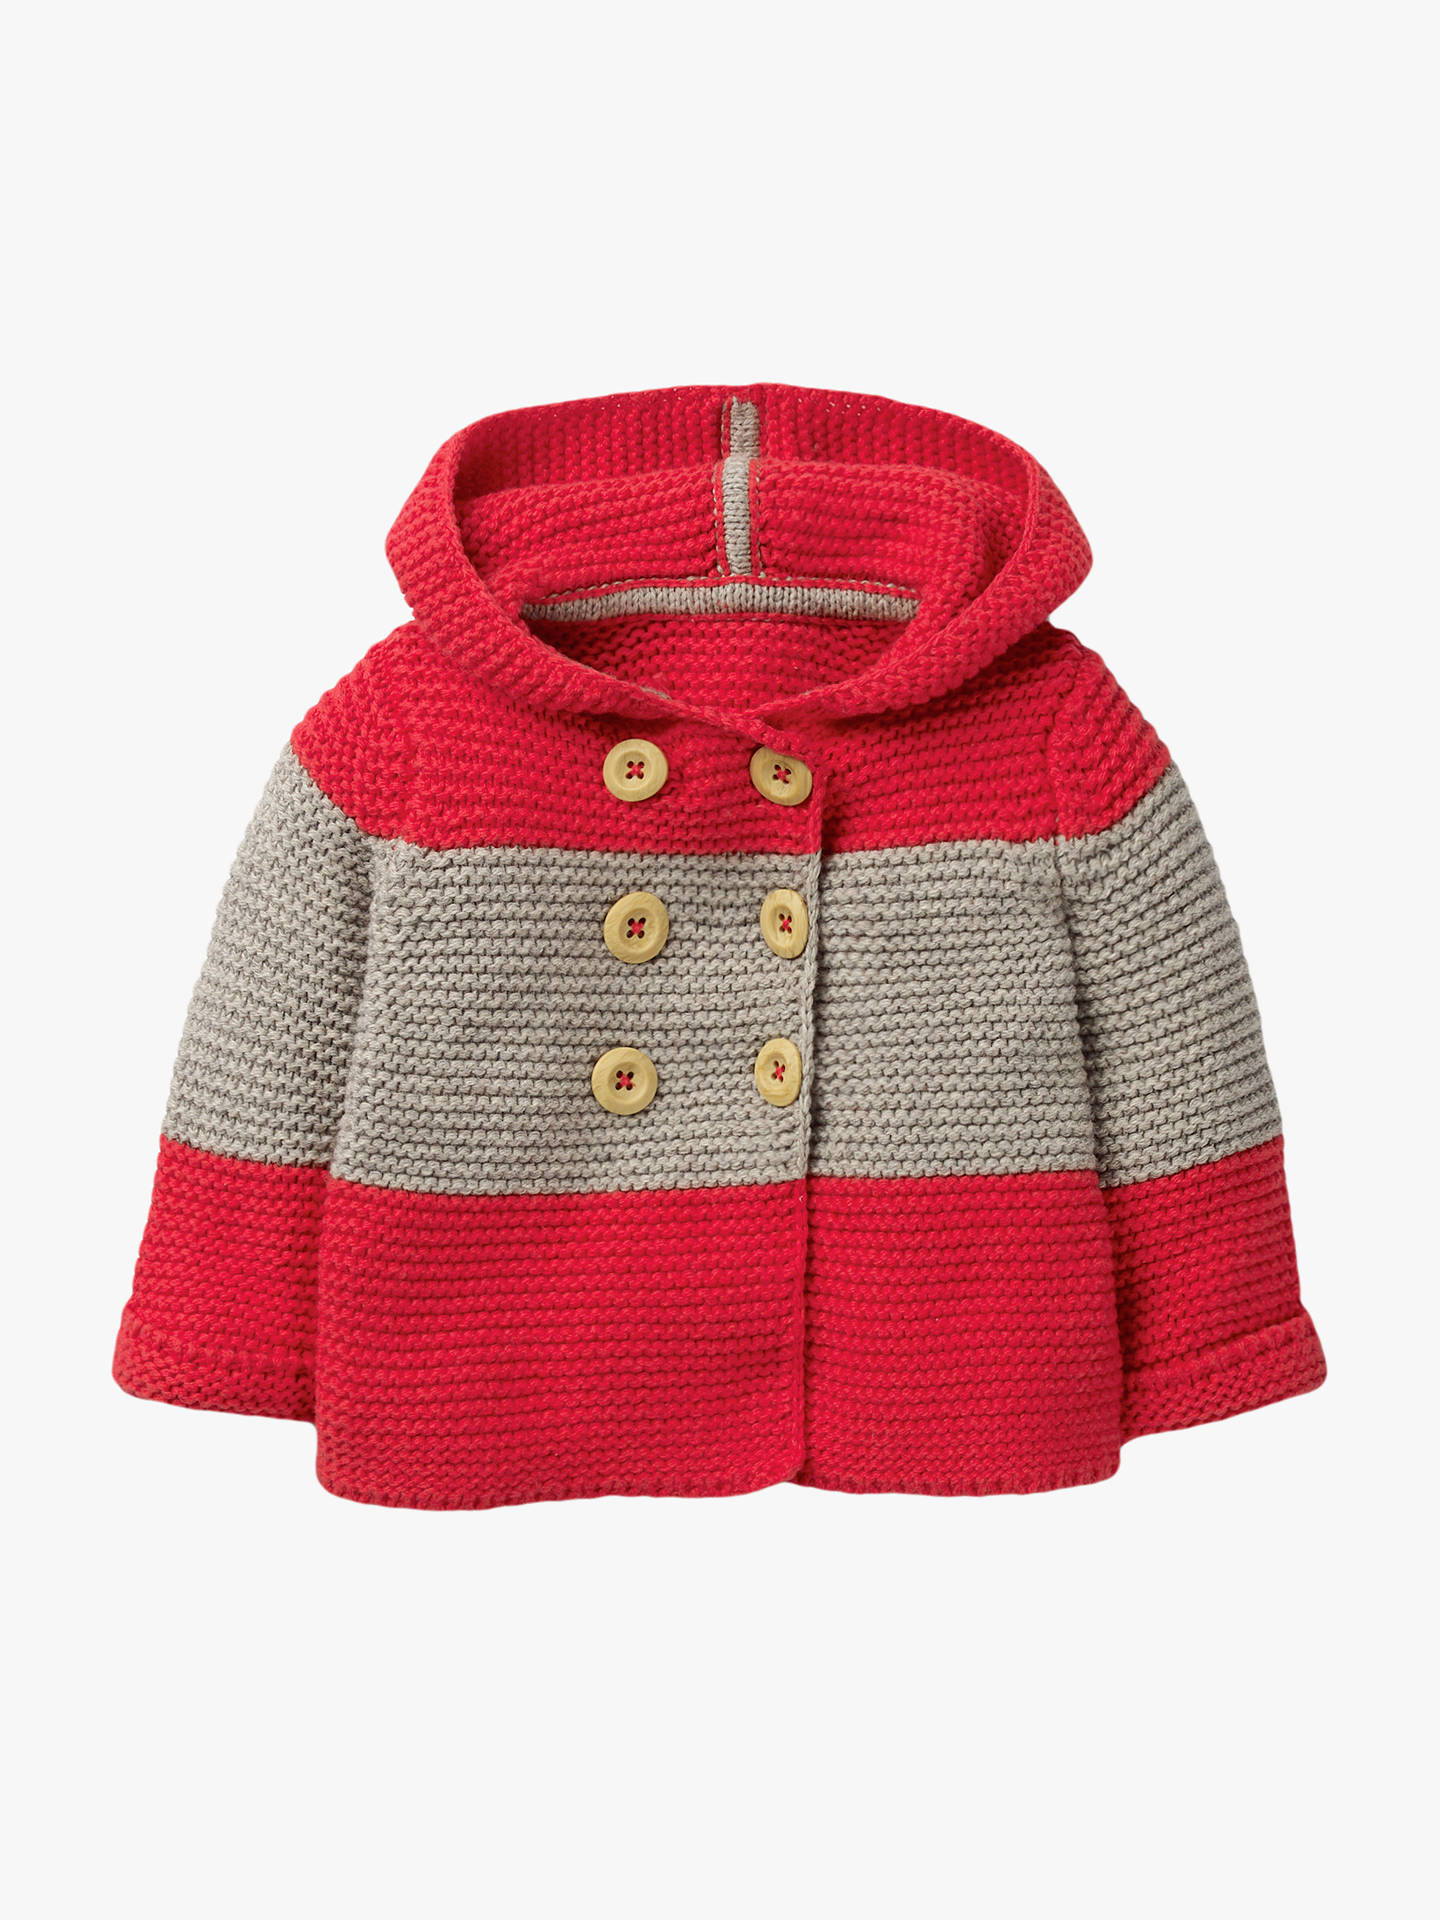 508ca9a635d7 Mini Boden Baby Knitted Jacket